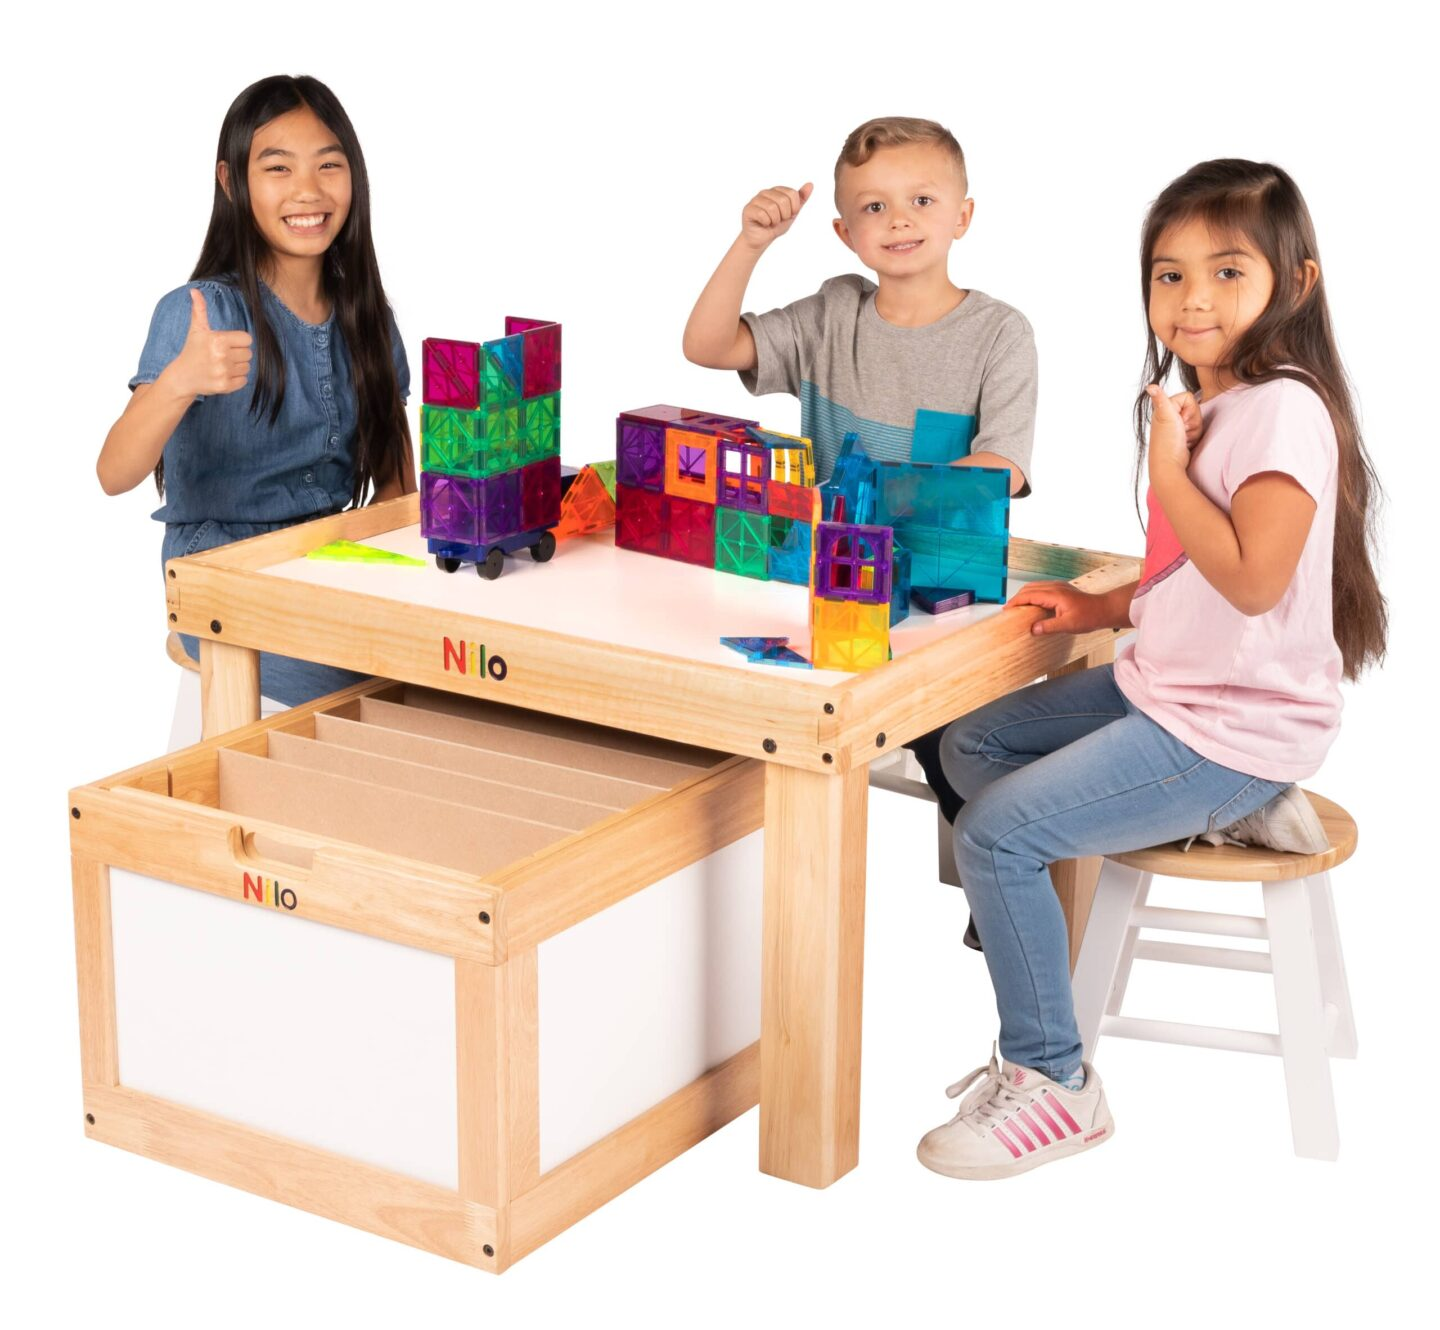 PHOTOS, PHOTOS AND MORE PHOTOS OF OUR NILO LEGO TABLE & PRODUCTS IN USE!